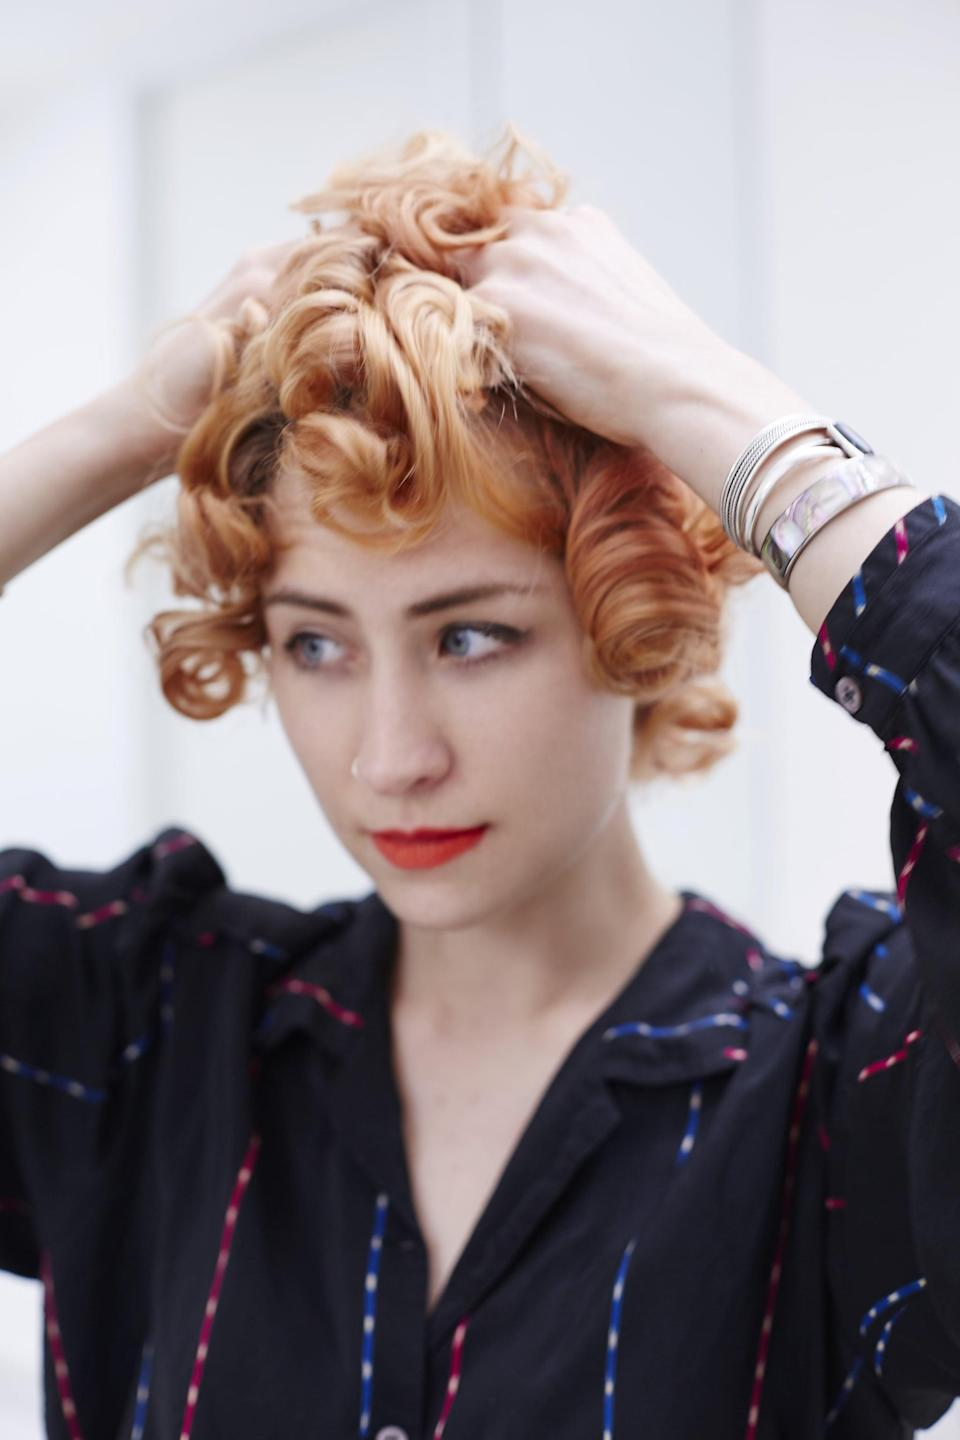 <p>Once all of the pins are removed, it's time to break up the curls. The best way to do this is by placing your hands underneath your hair, just behind your ears, and shaking it out at the root. You disrupt the curl less and the hair falls much more naturally.</p>